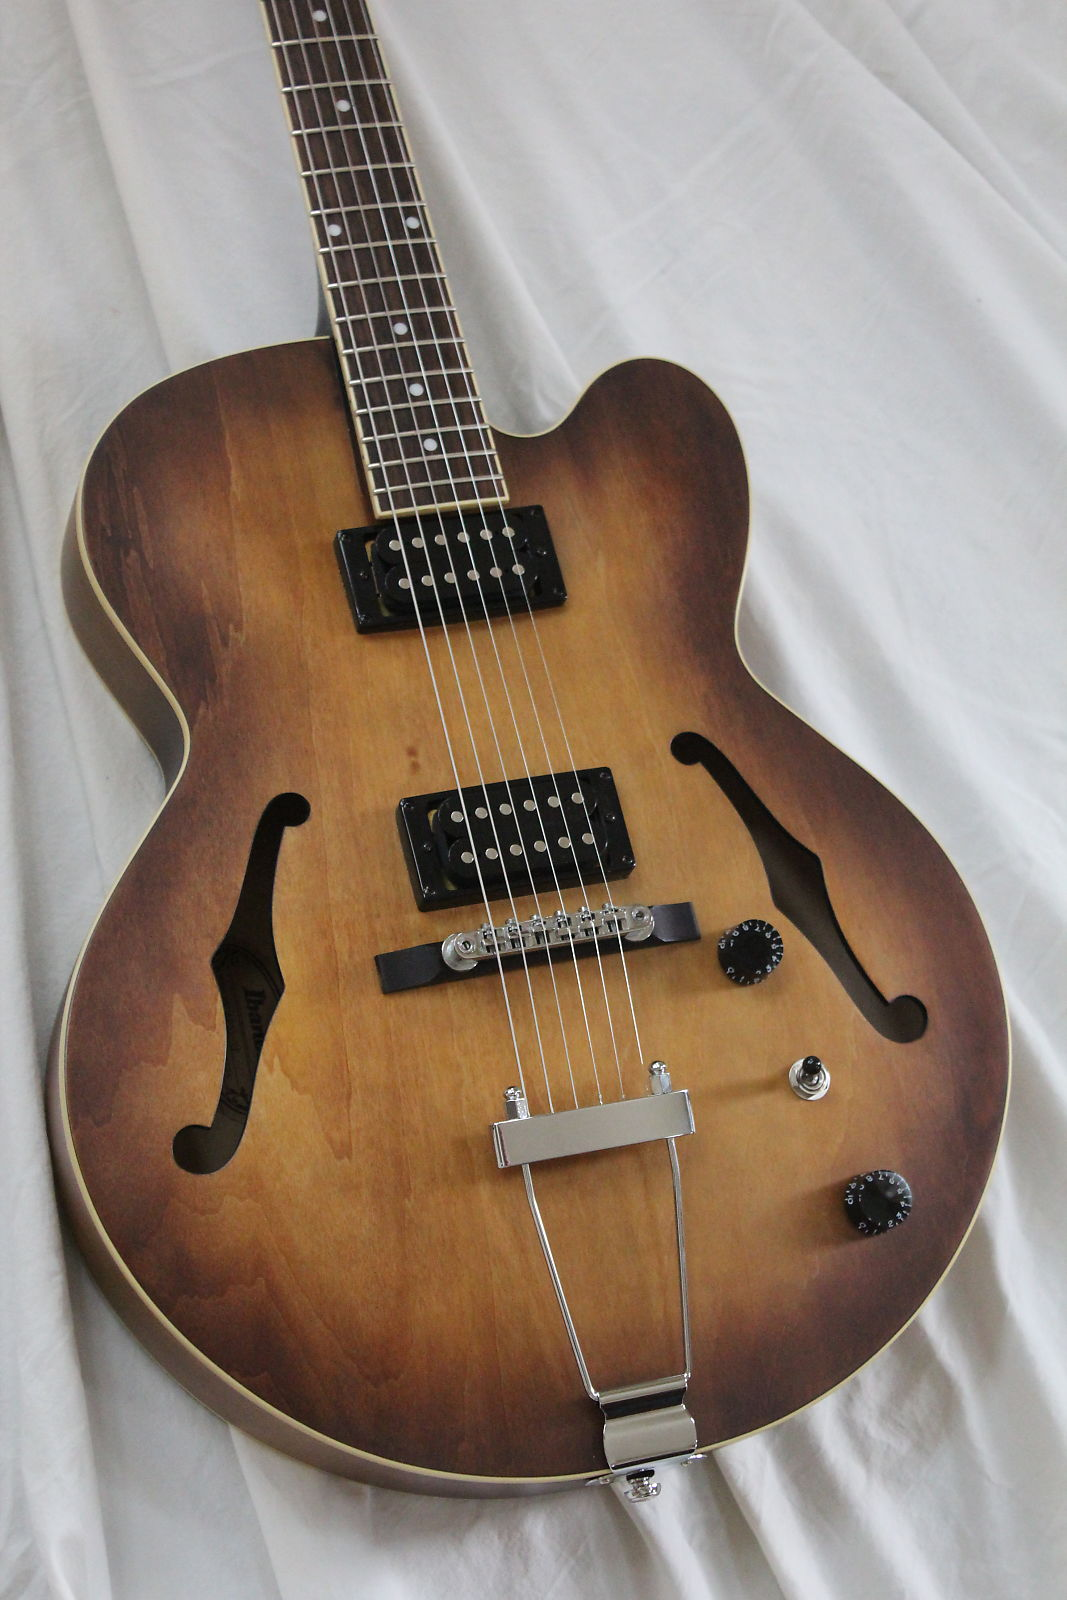 2016 Ibanez Artcore AF55 Hollowbody Electric Guitar - Tobacco Flat Finish